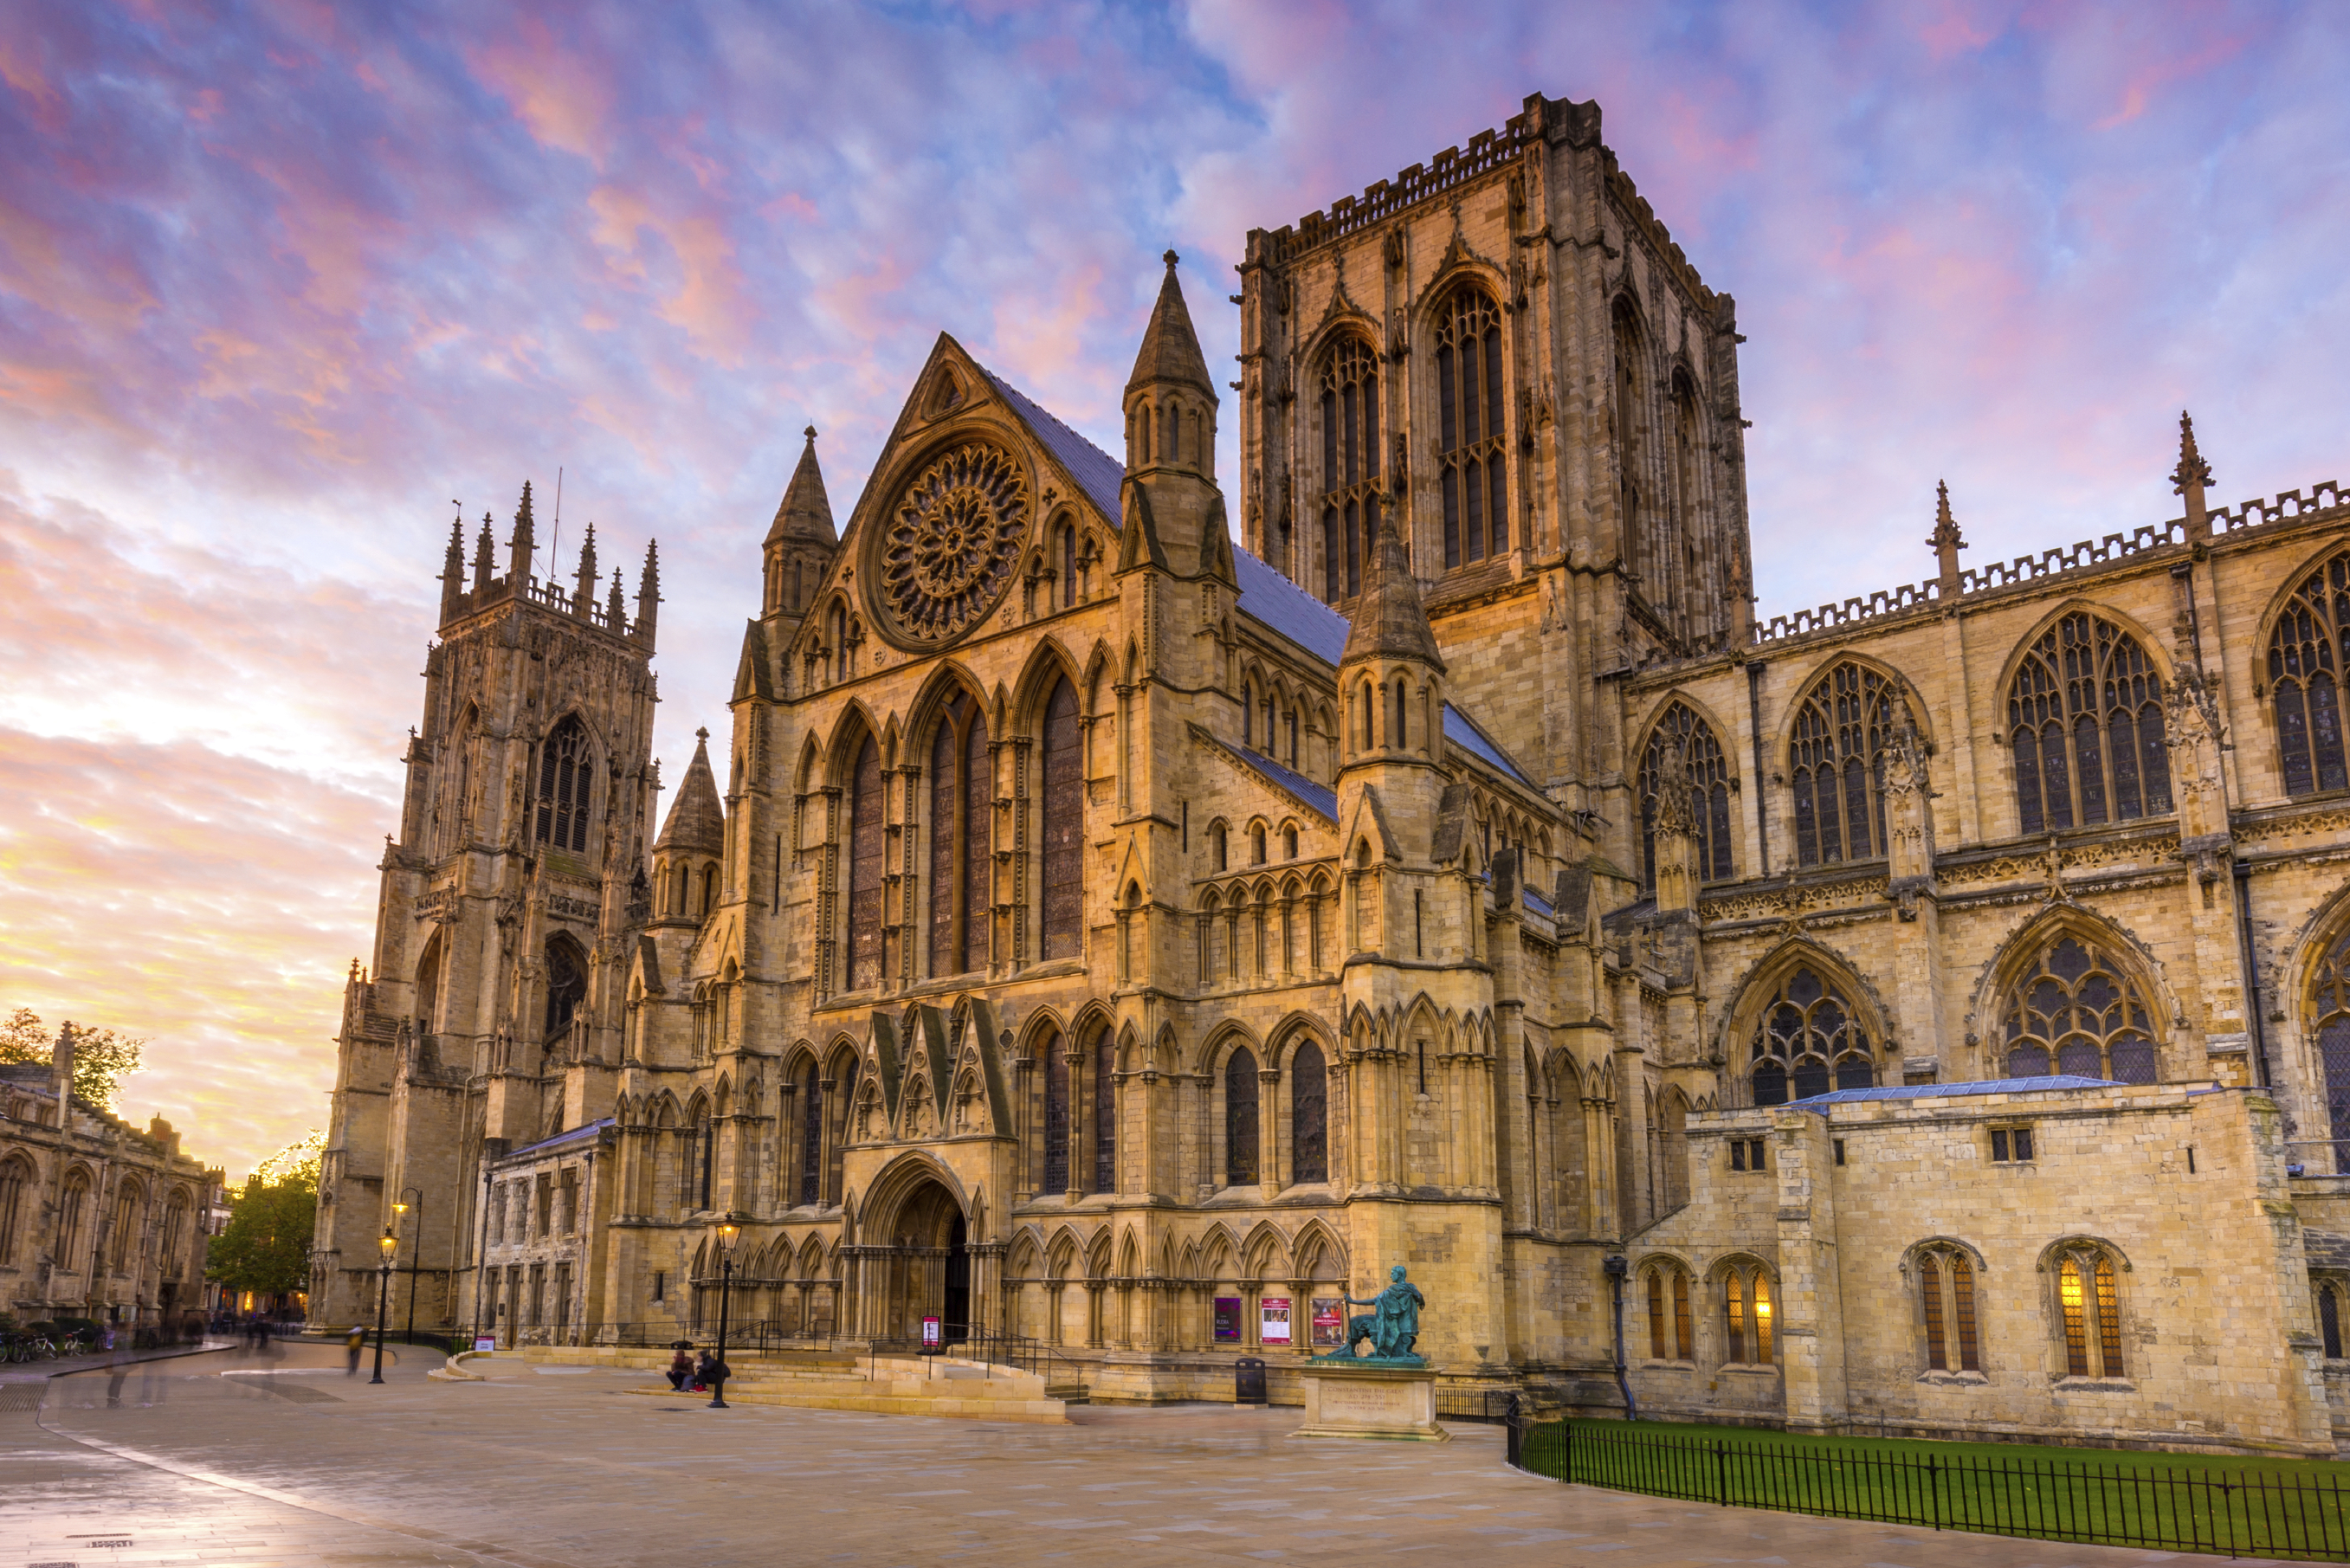 yorkshire catholic singles Look around for information on how to plan a catholic wedding, dating tips, online dating websites, books about the single life, prayers for single catholics, religious vocation discernment resources, and much more.